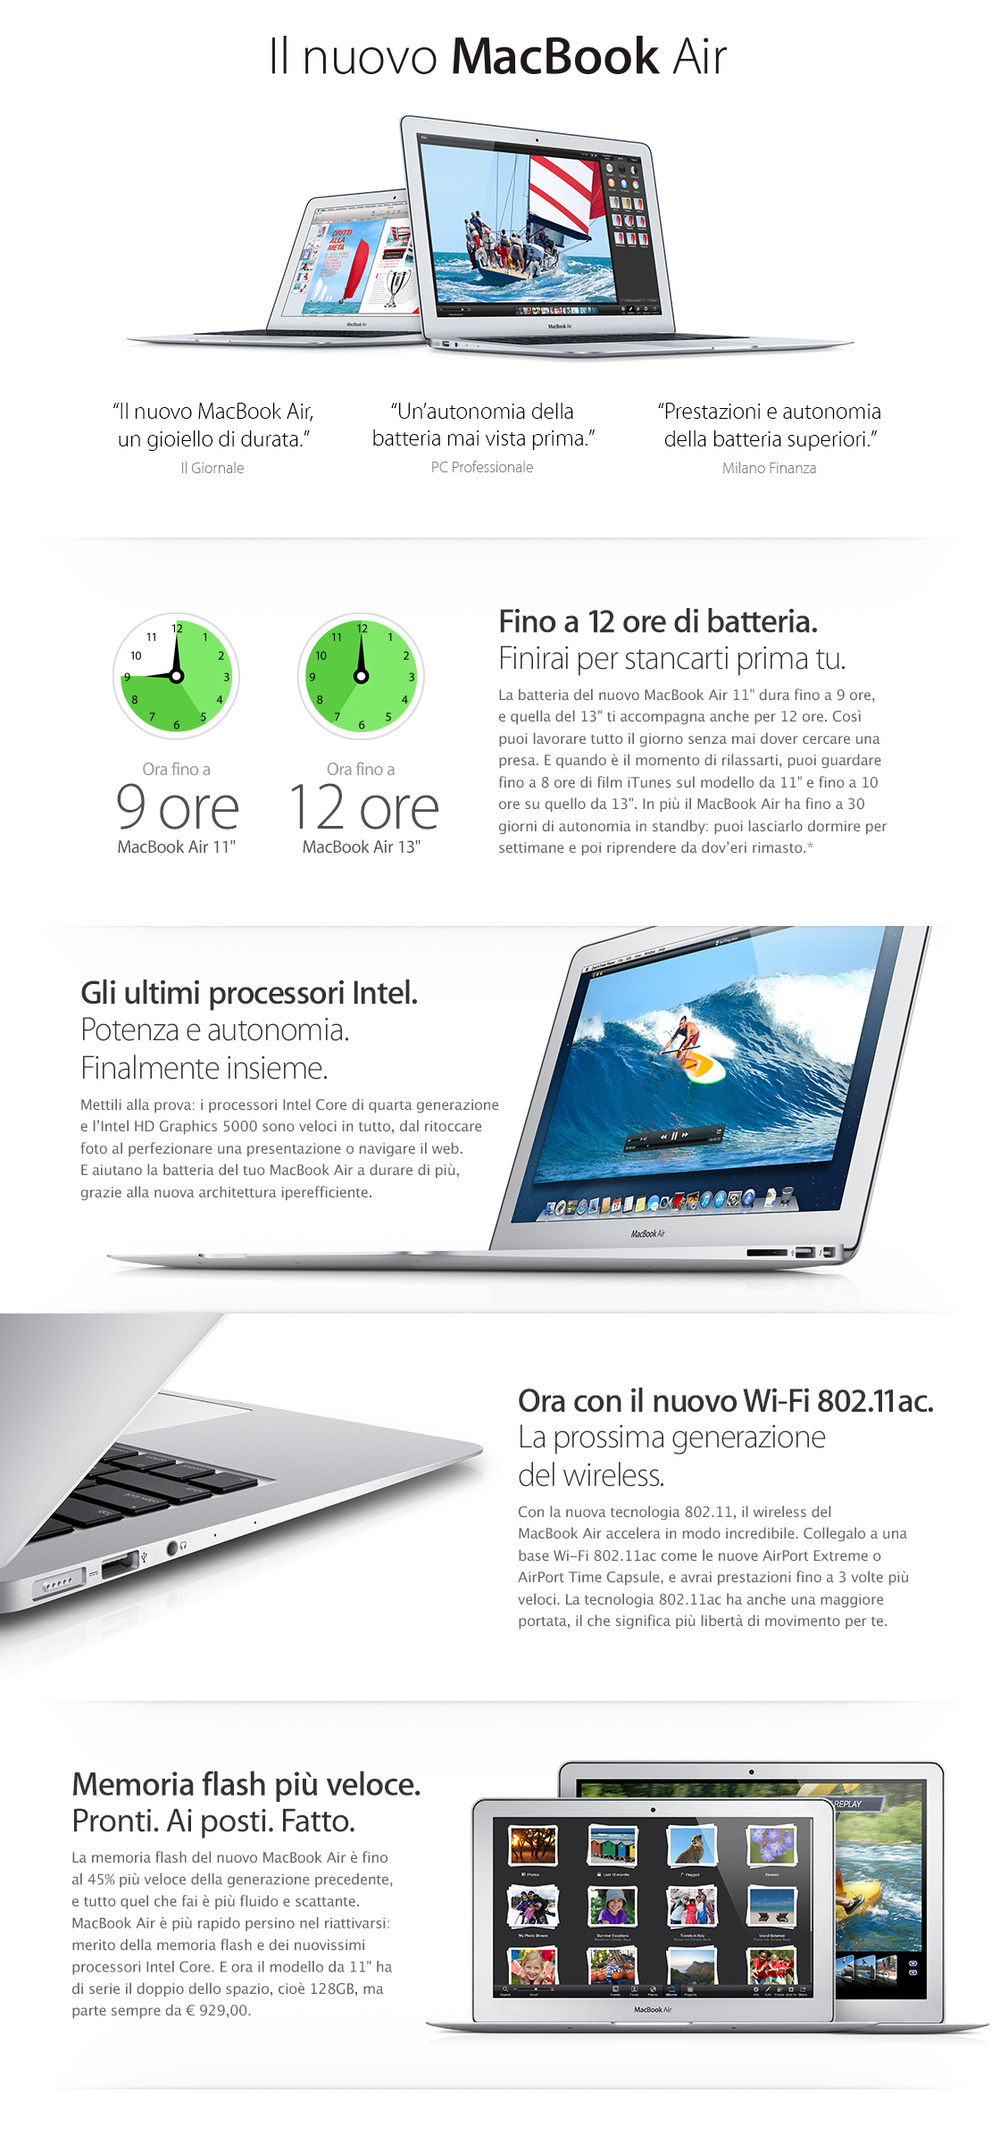 Il nuovo MacBook Air